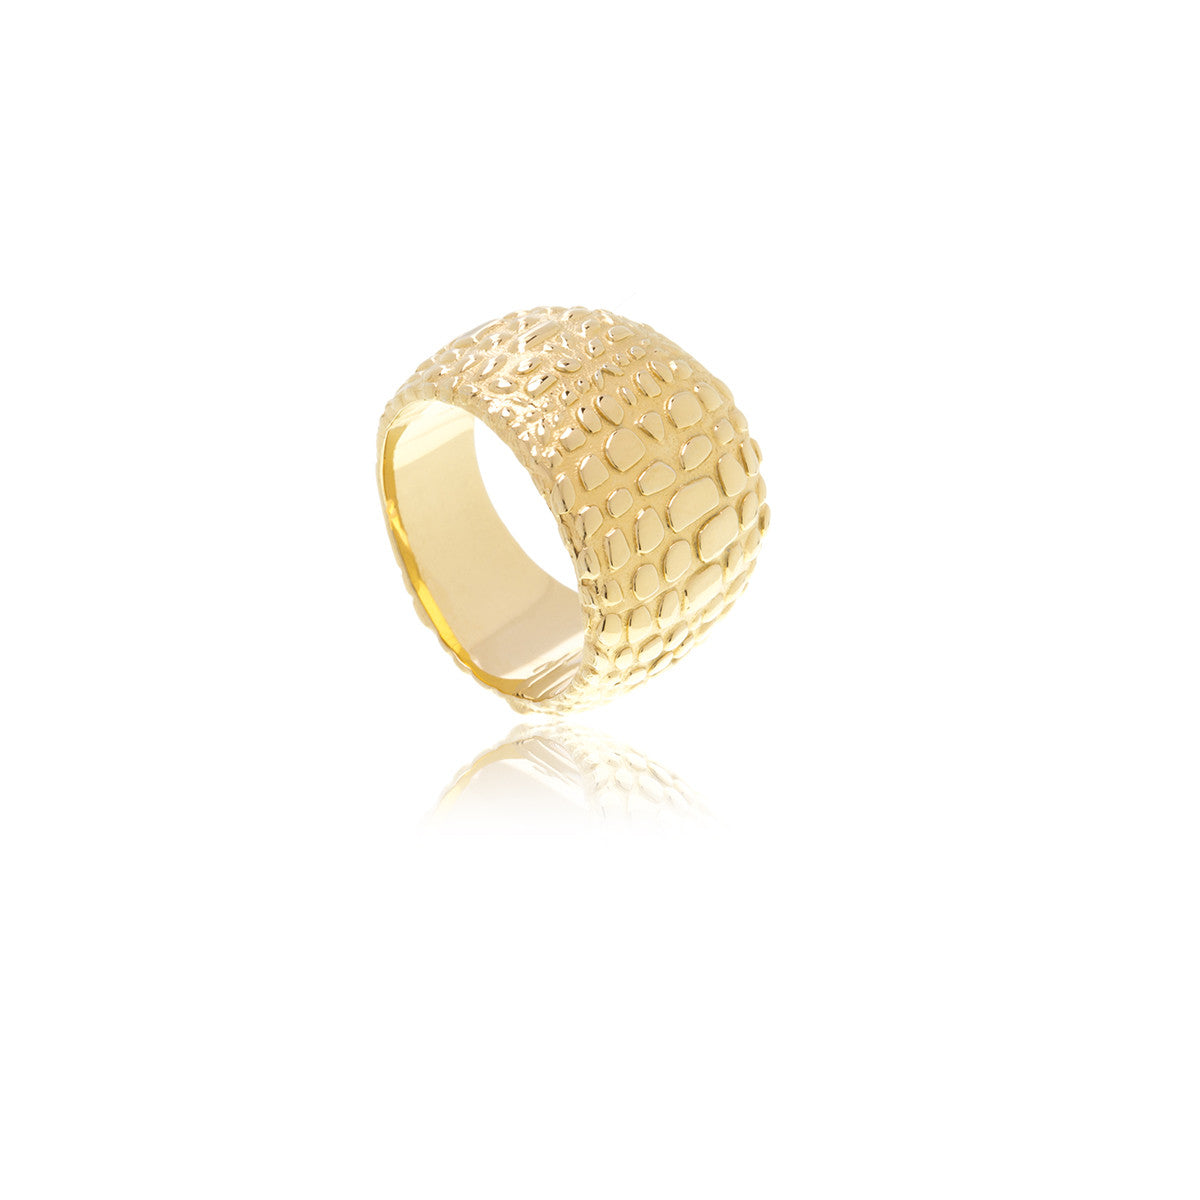 Reverie Gold Animal Print Ring - MCK Brands